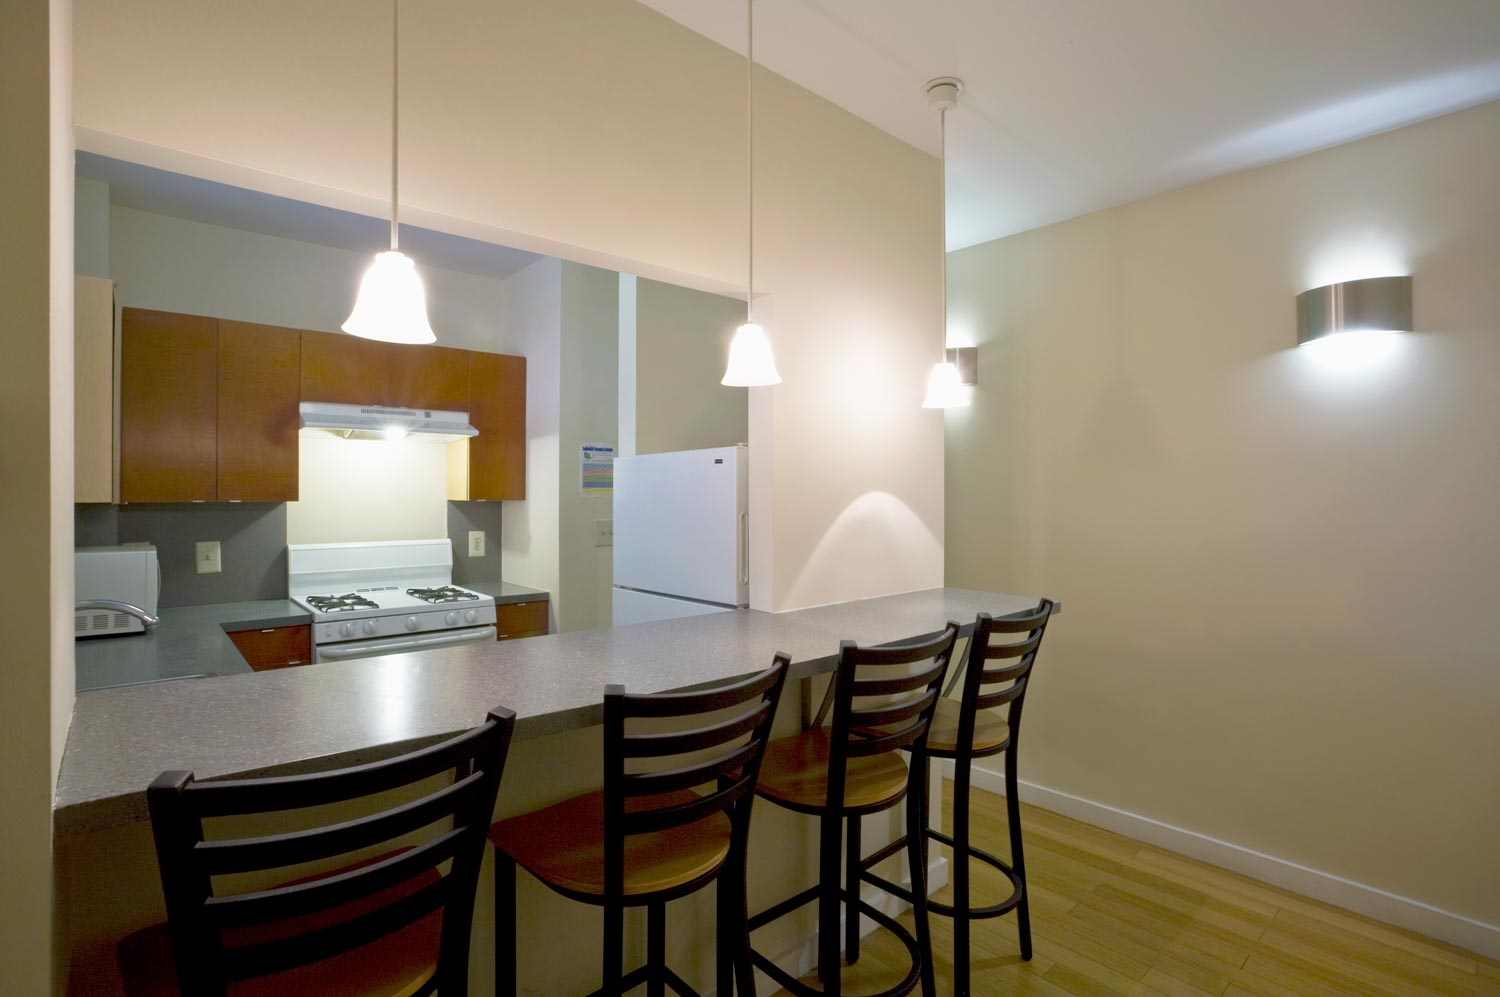 Private suites offer residents maximize use of the small spaces with innovative furniture design.